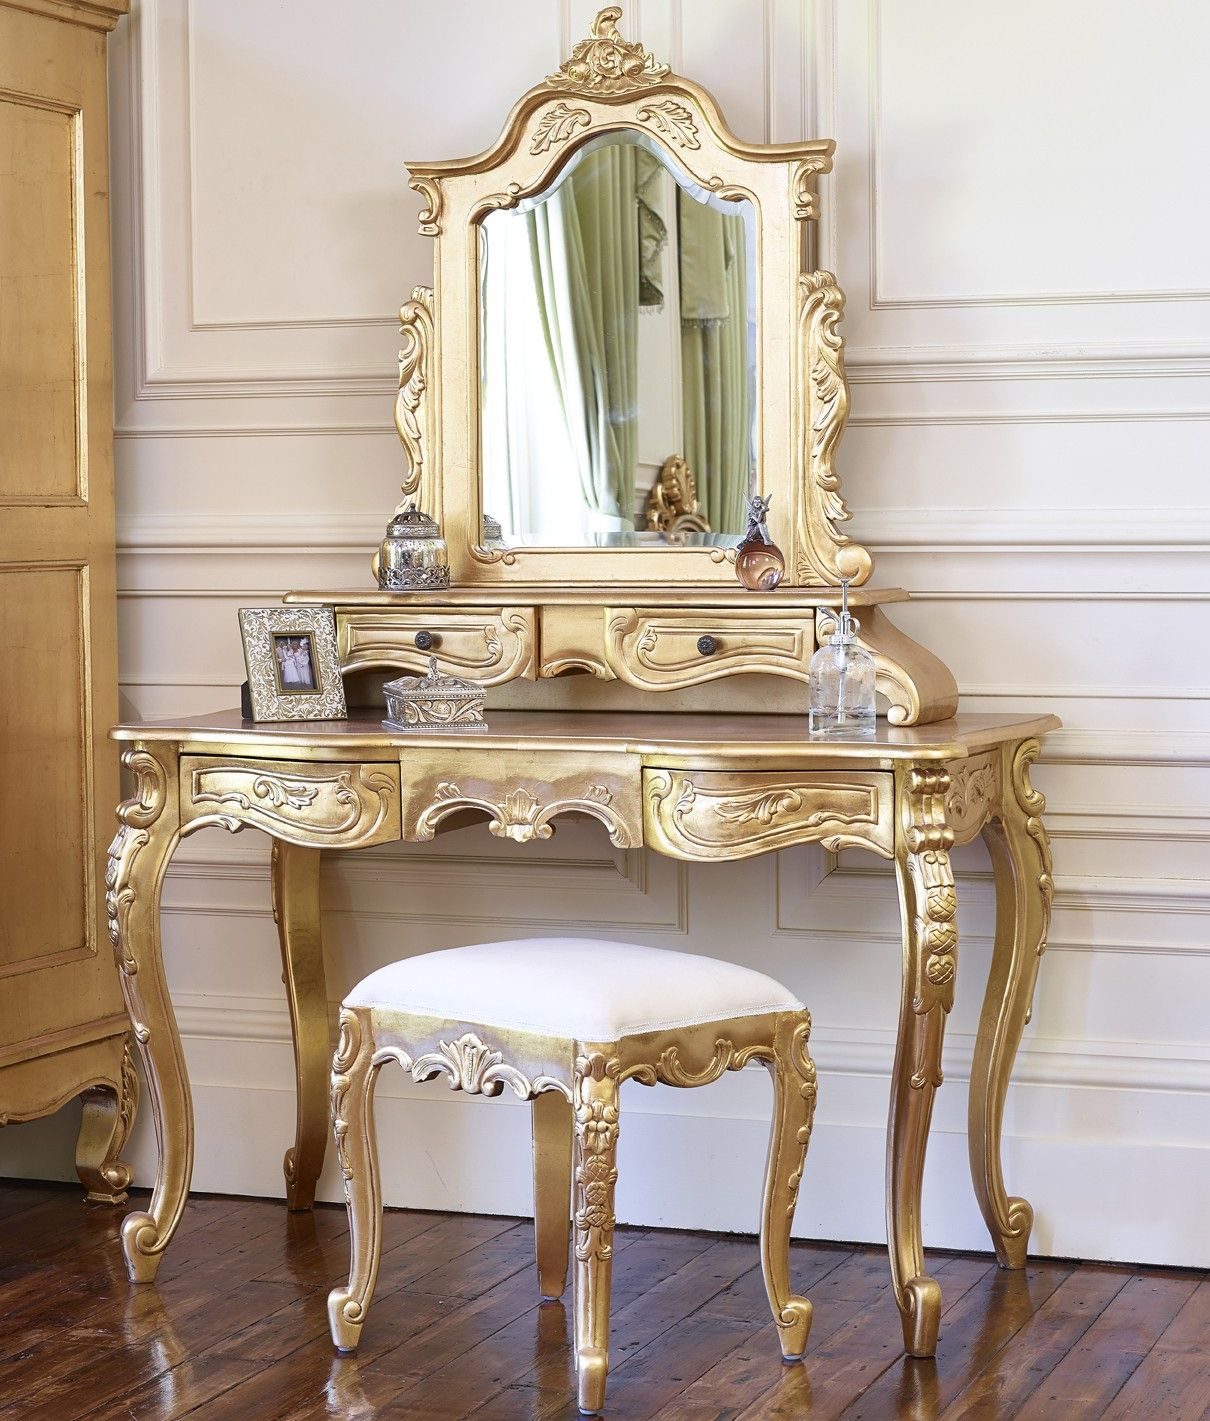 Dressing table with mirror dolce pavone gold leaf dressing table mirror and stool  dressing